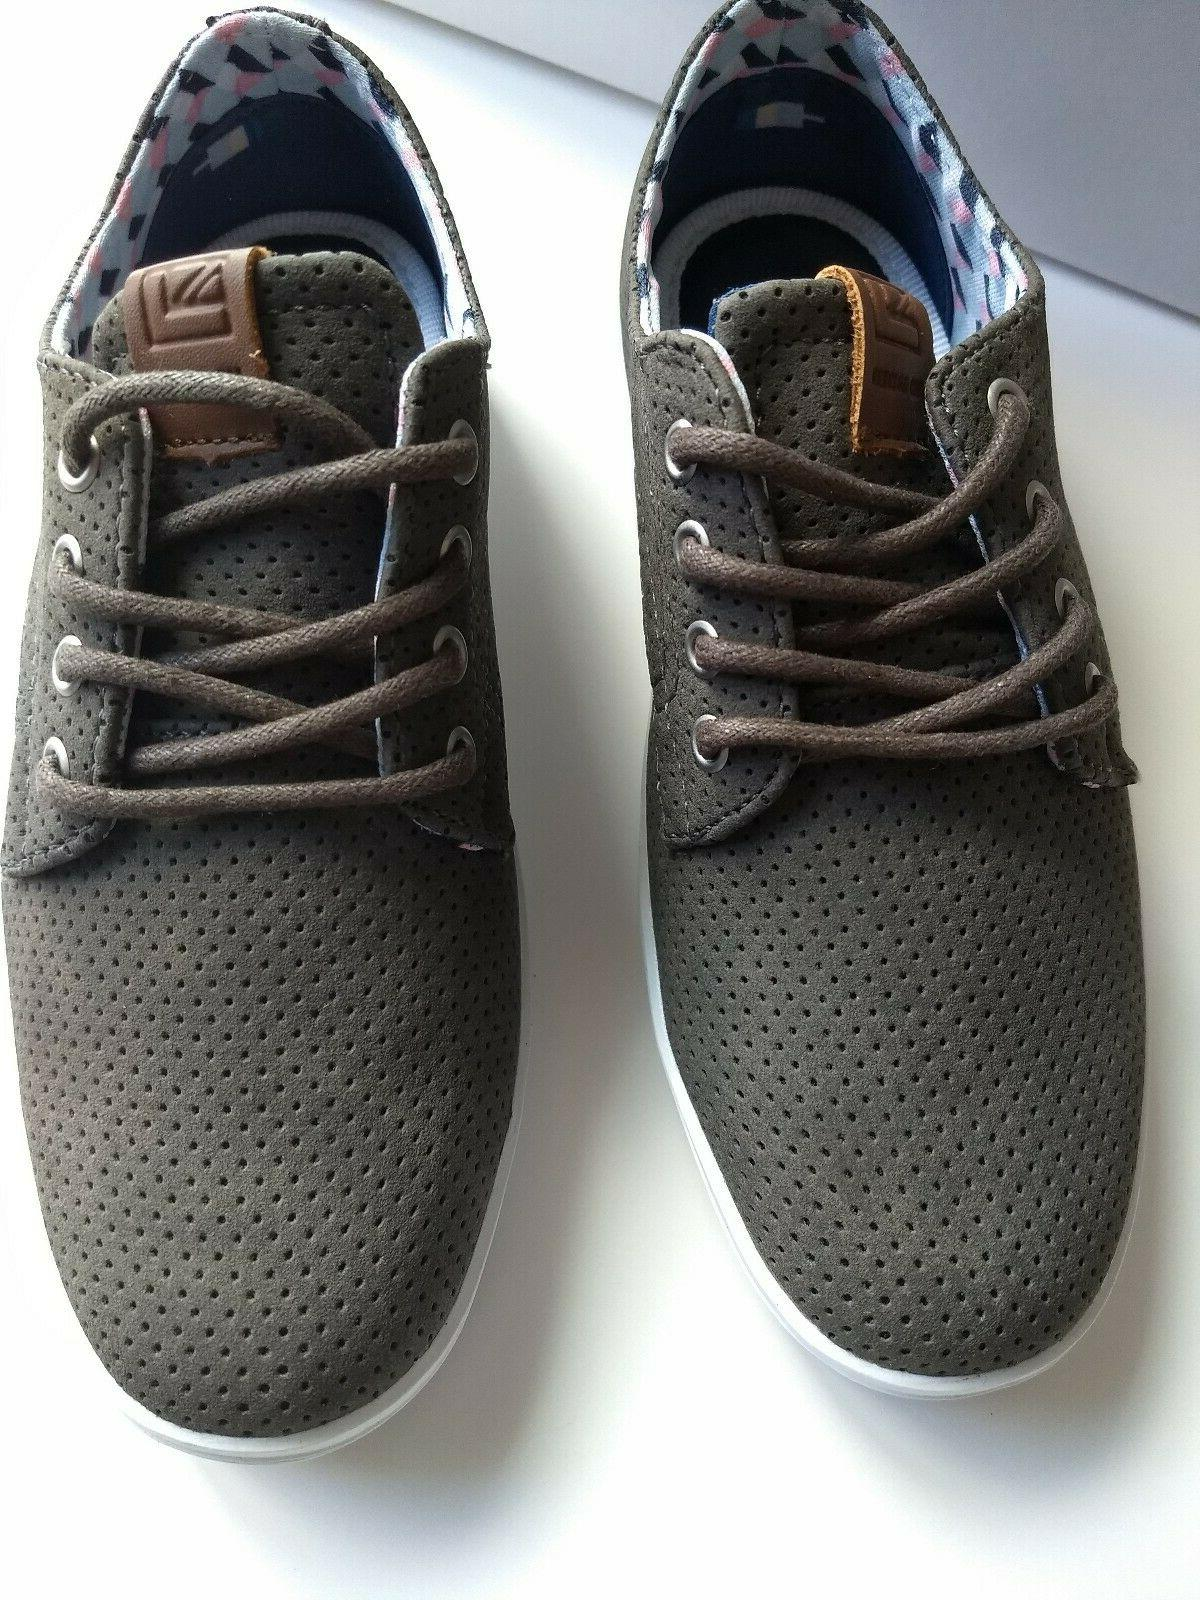 Ben Sherman Shoes For Authentic Grey Size